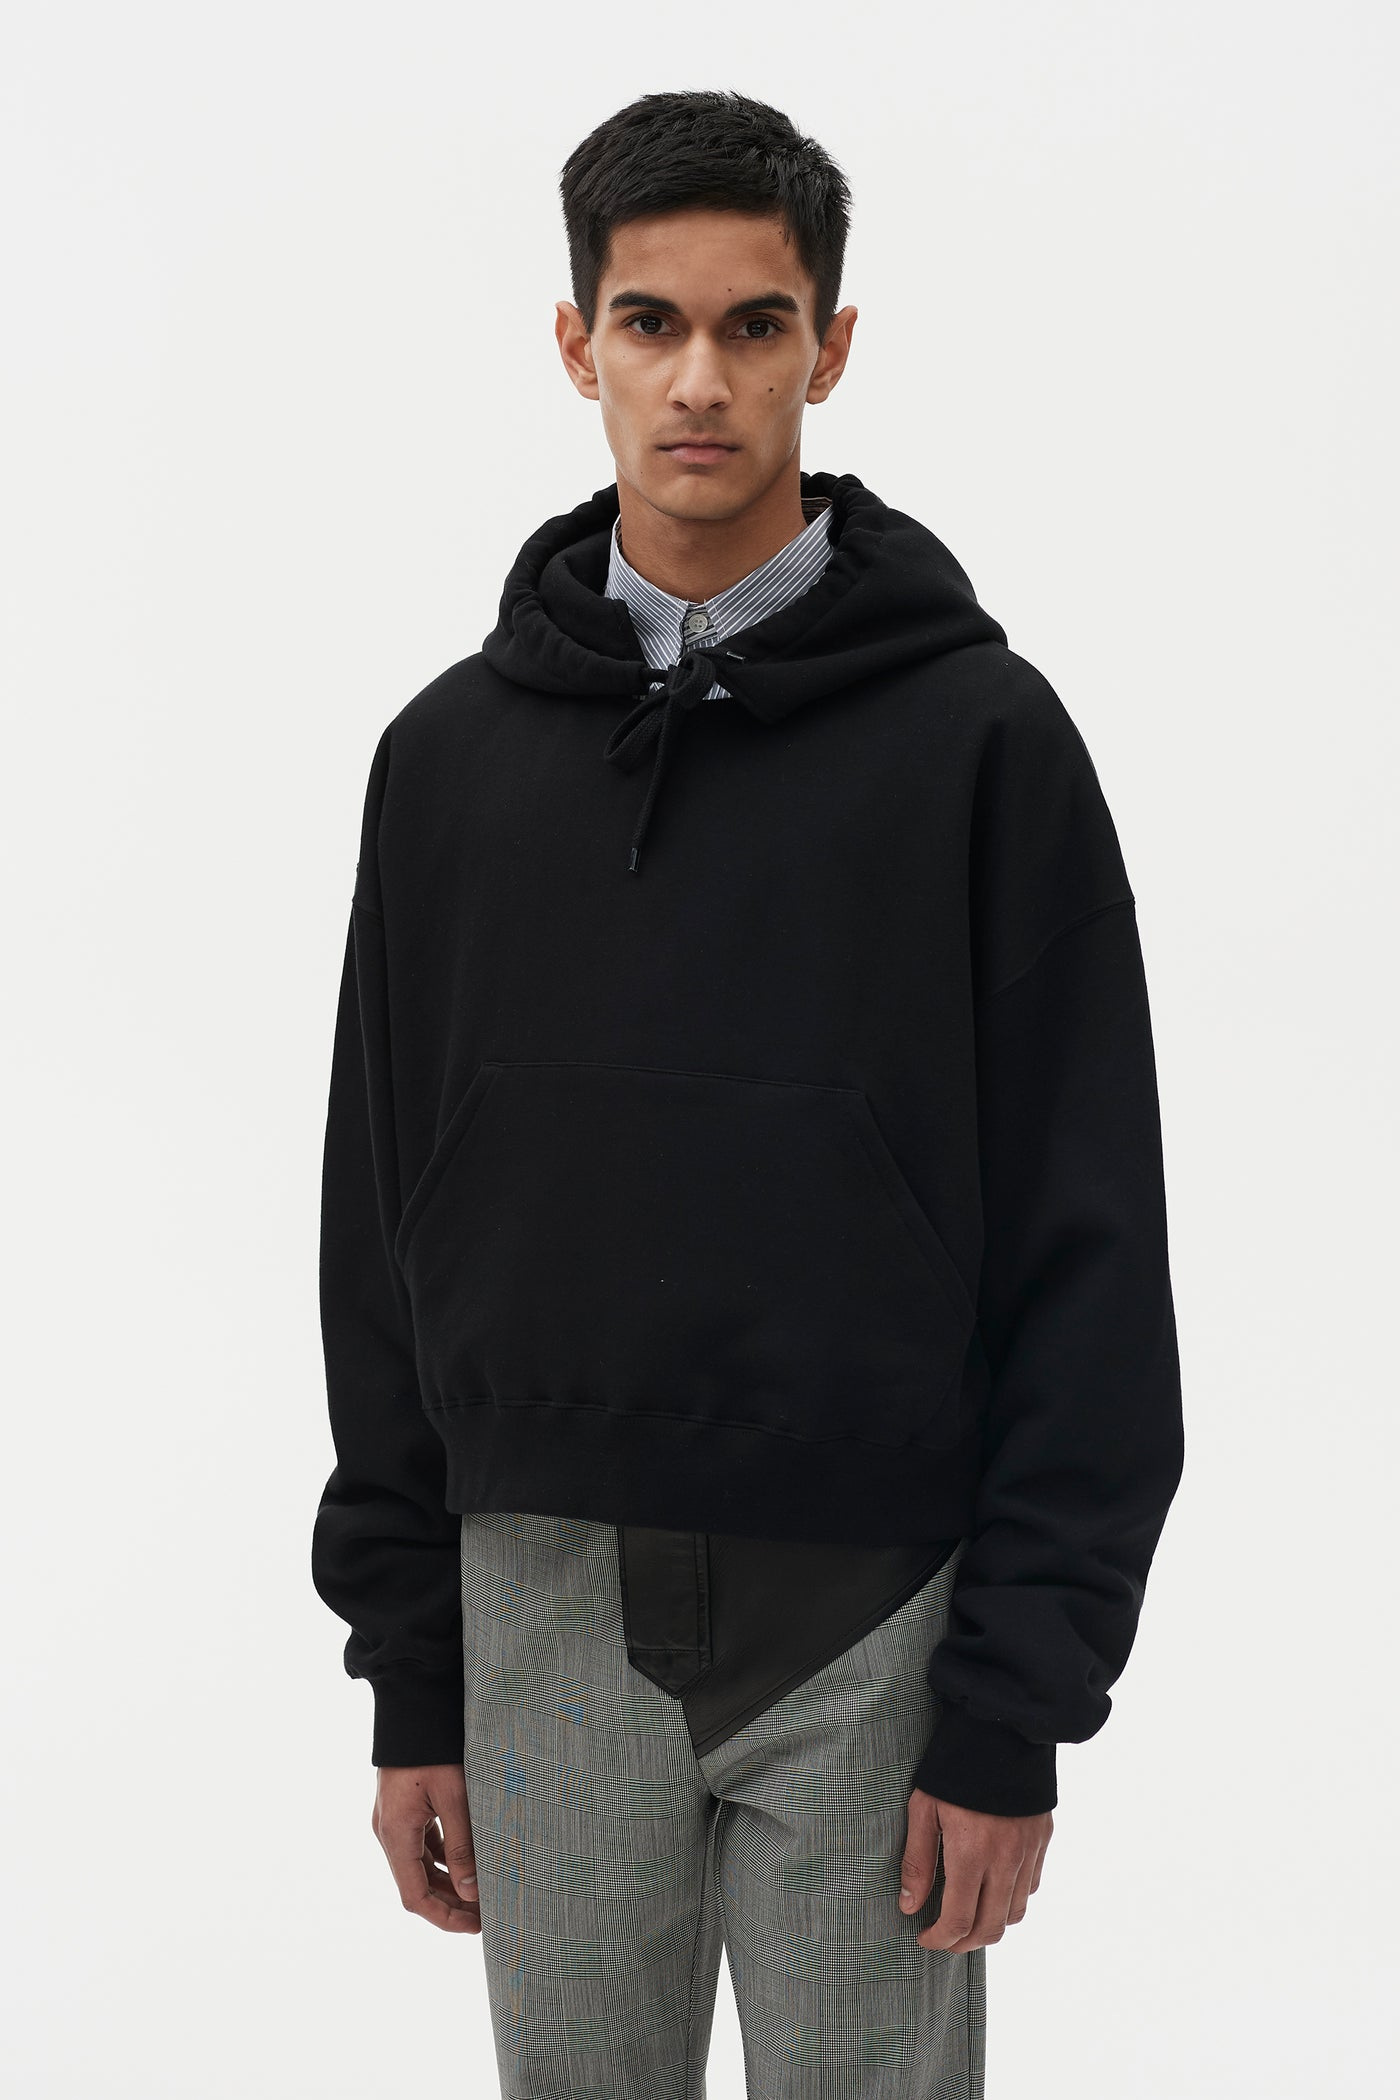 Tyrone Hooded Sweatshirt Black